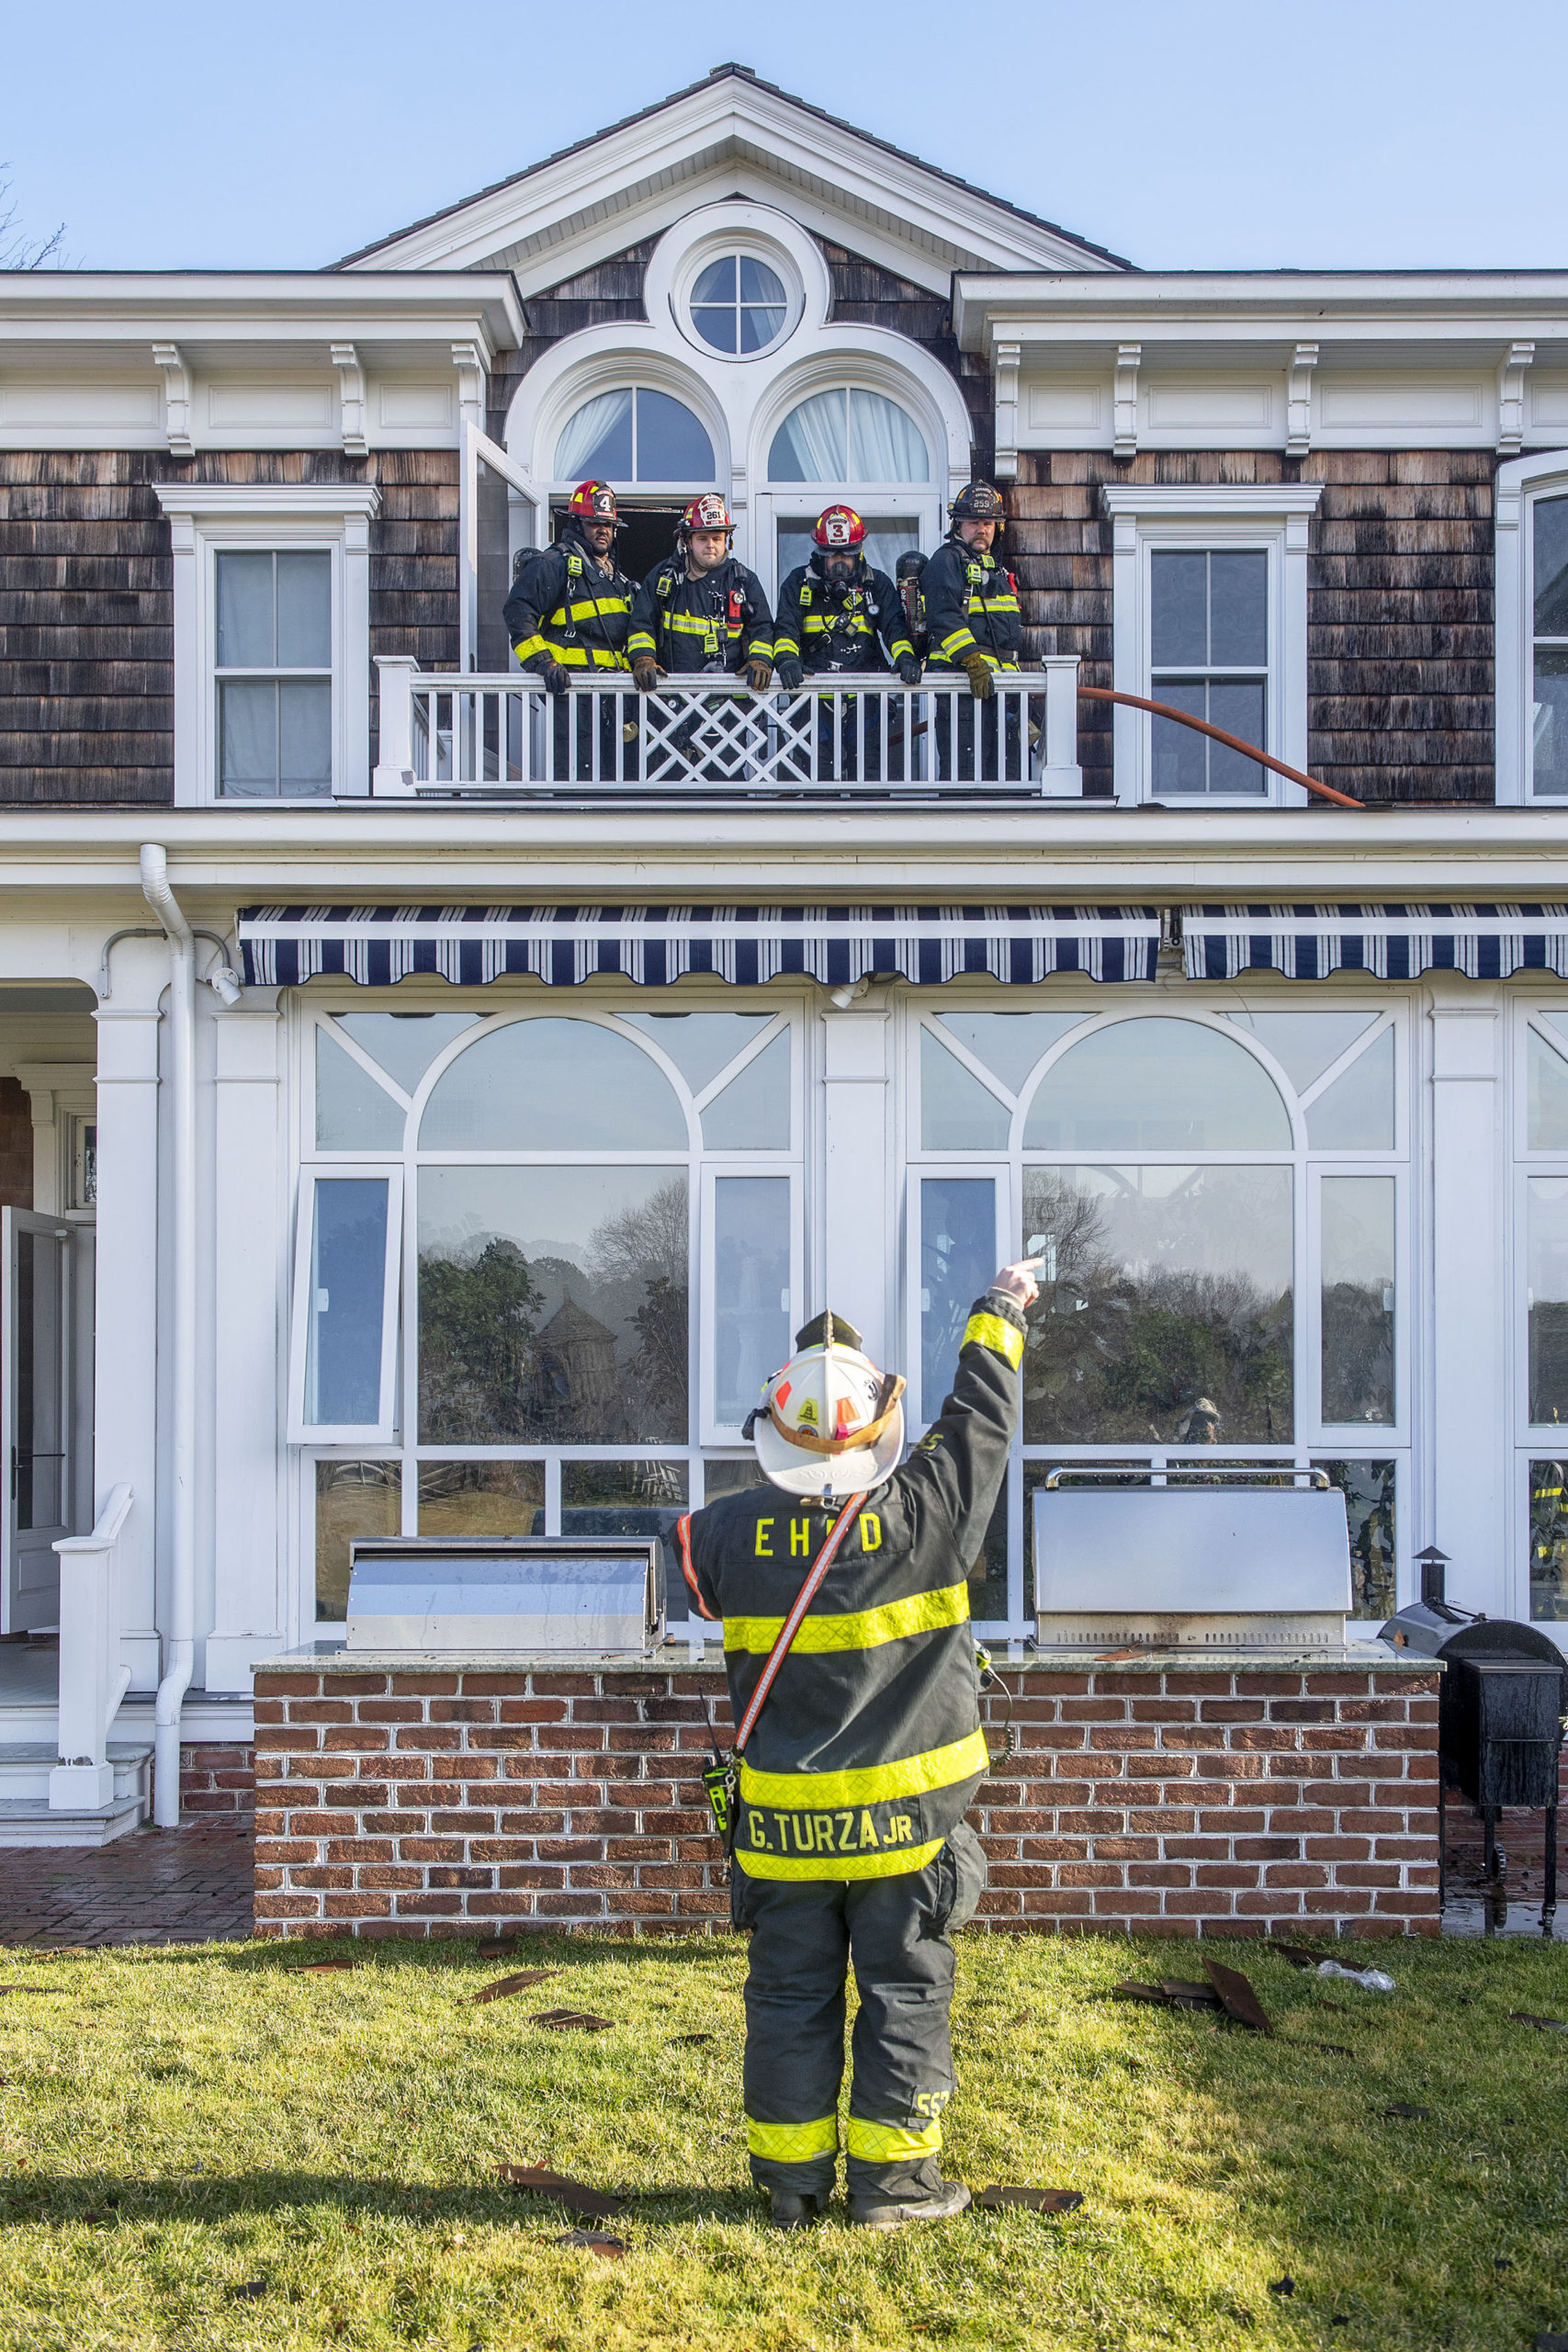 The Bridgehampton Fire Department, assisted by mutual aid from several other local fire departments, battled a   fire in the roof of a Water Mill mansion on Little Noyac Path in Water Mil on Saturday.